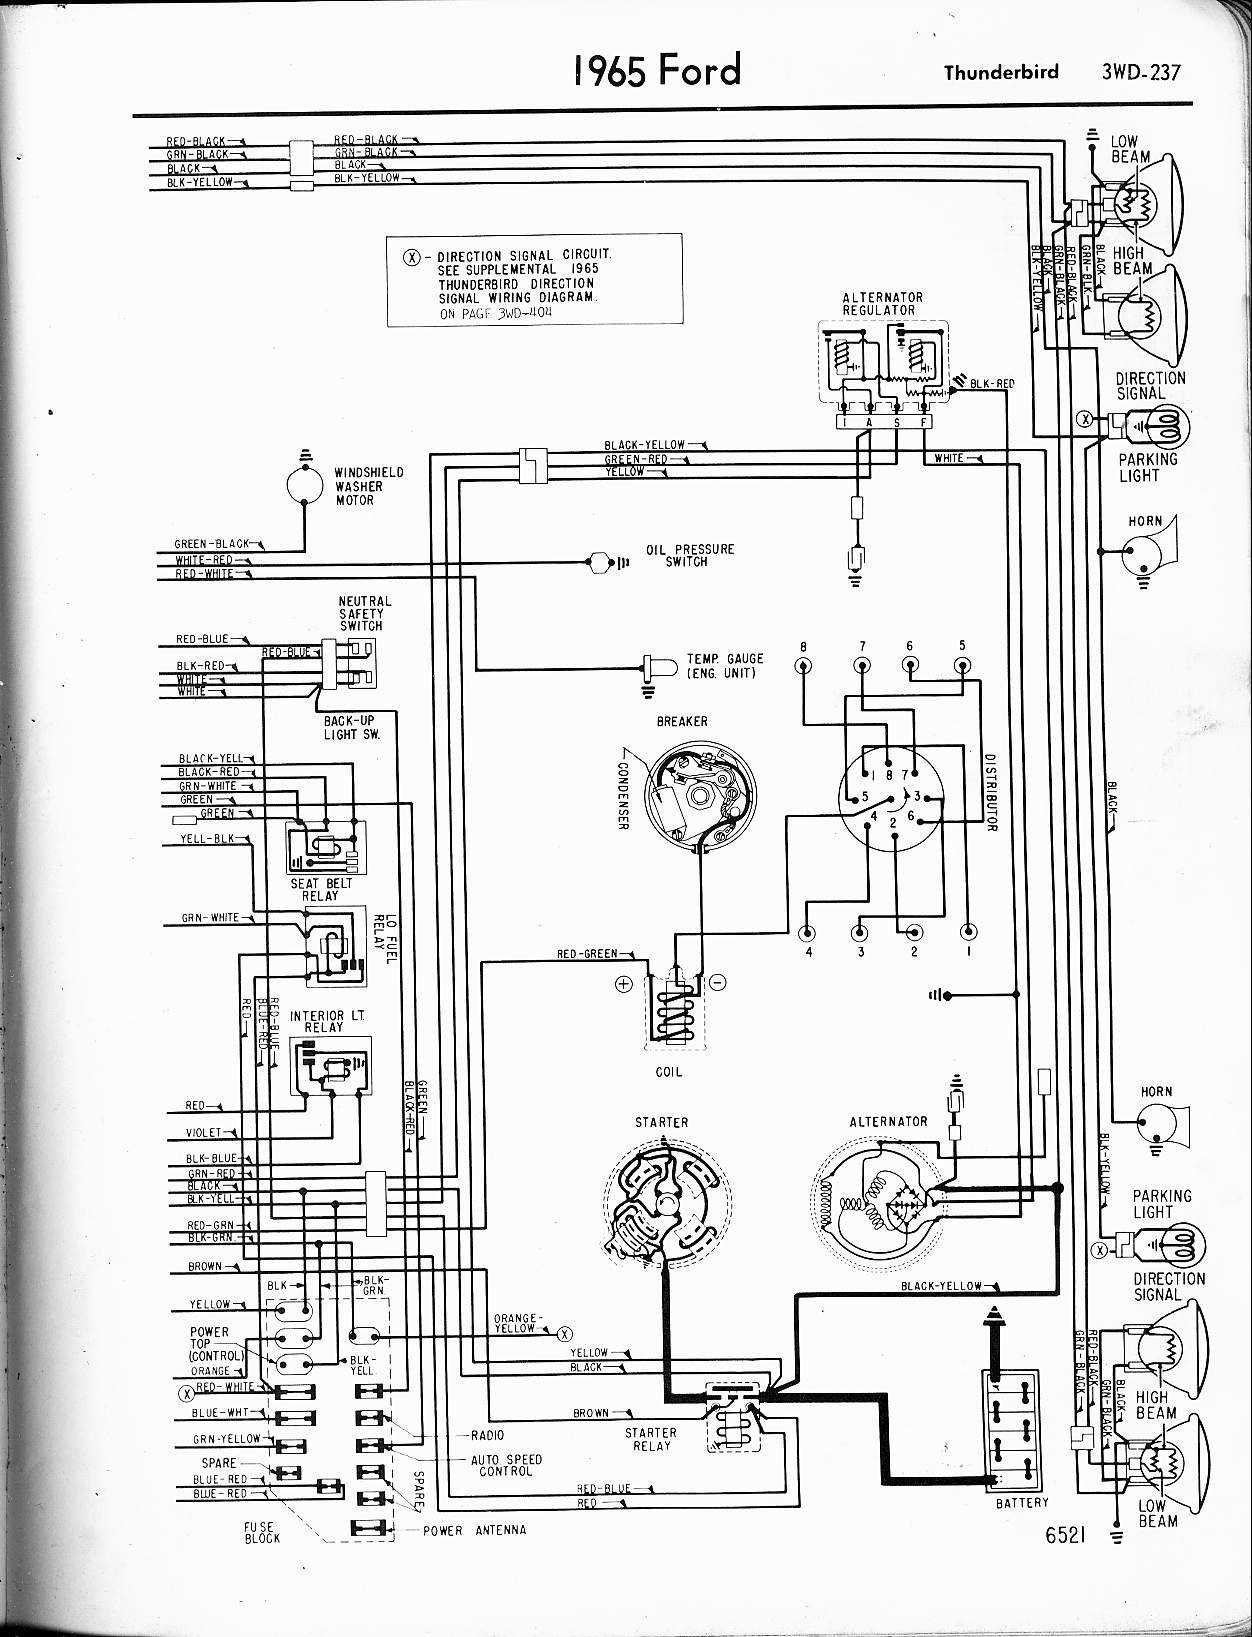 1979 ford thunderbird wiring diagram block and schematic diagrams \u2022 ford econoline wag.ext&reg ford econoline wiring diagram also 1966 ford thunderbird wiring rh linxglobal co 1986 ford thunderbird wiring